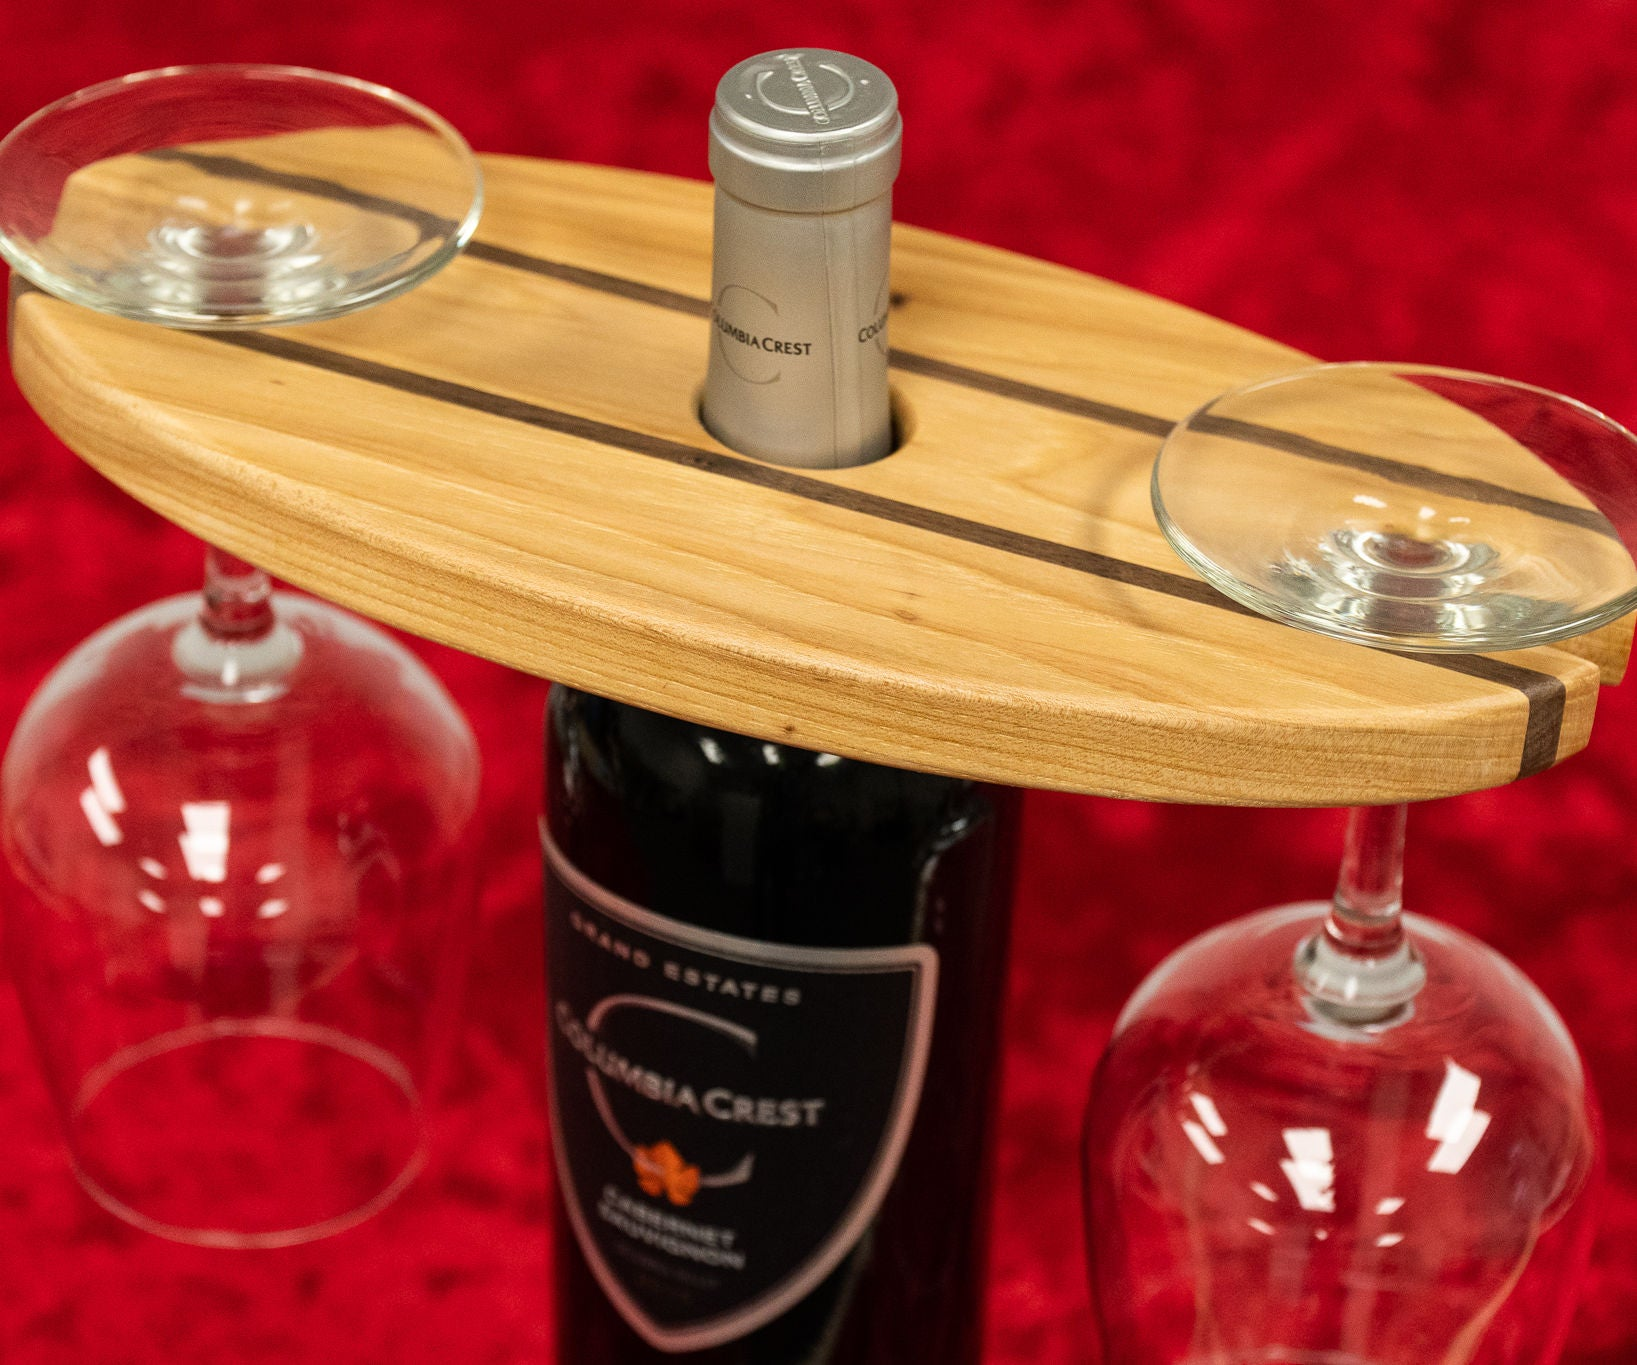 How To Make A Wine Bottle And Glass Display: 10 Steps